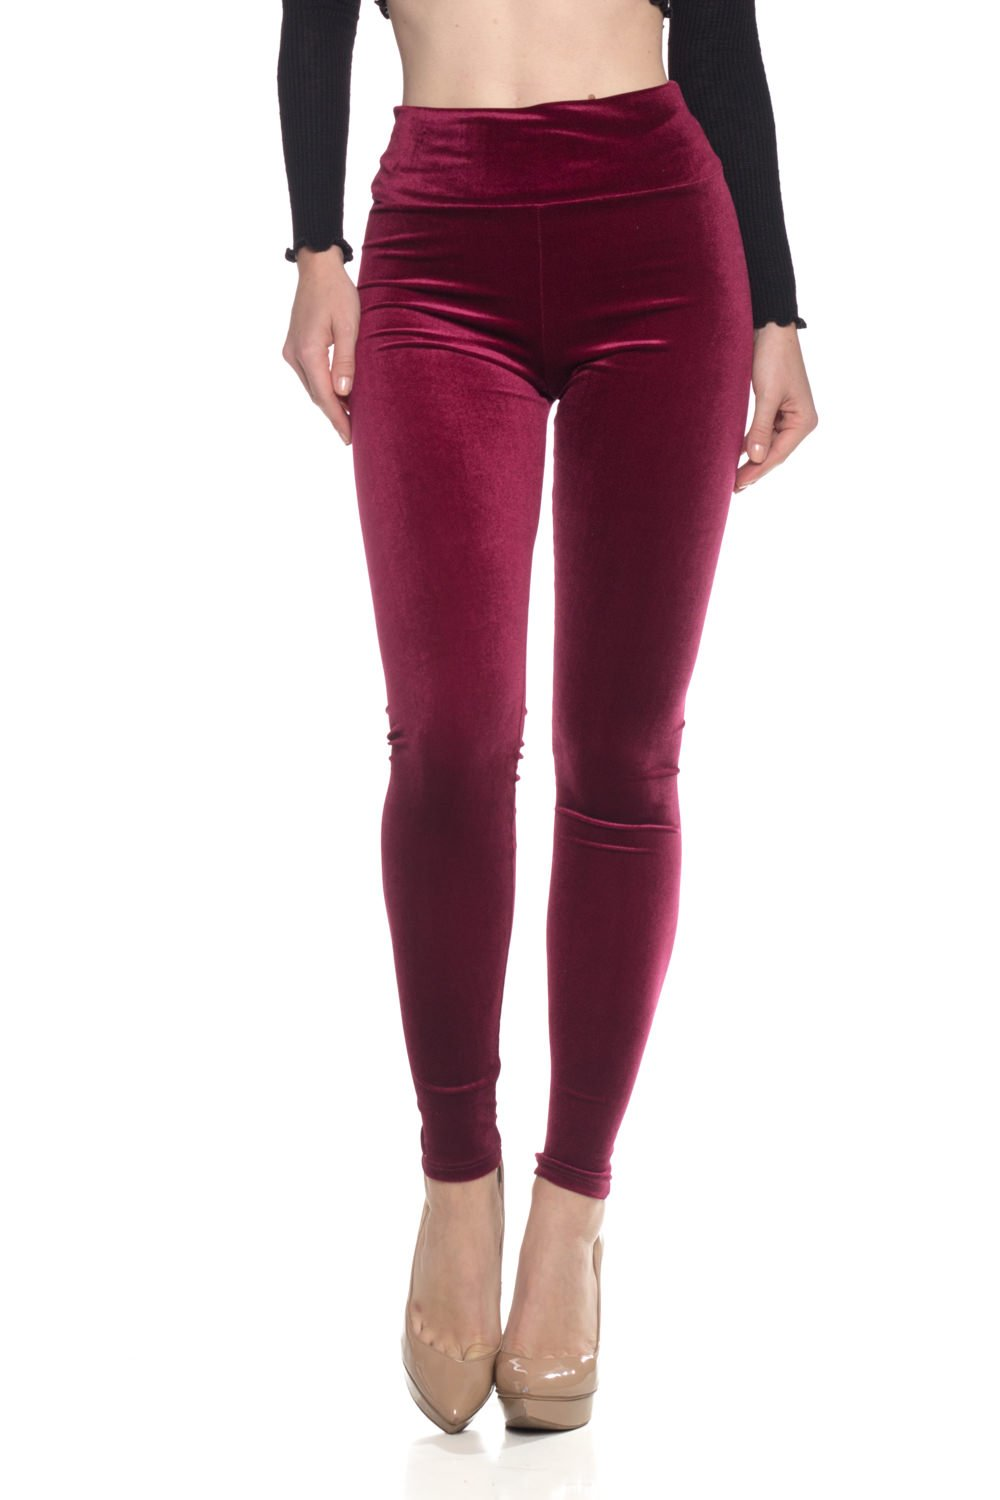 Women's J2 Love Velvet High Waist Leggings, Medium, Plush Burgundy